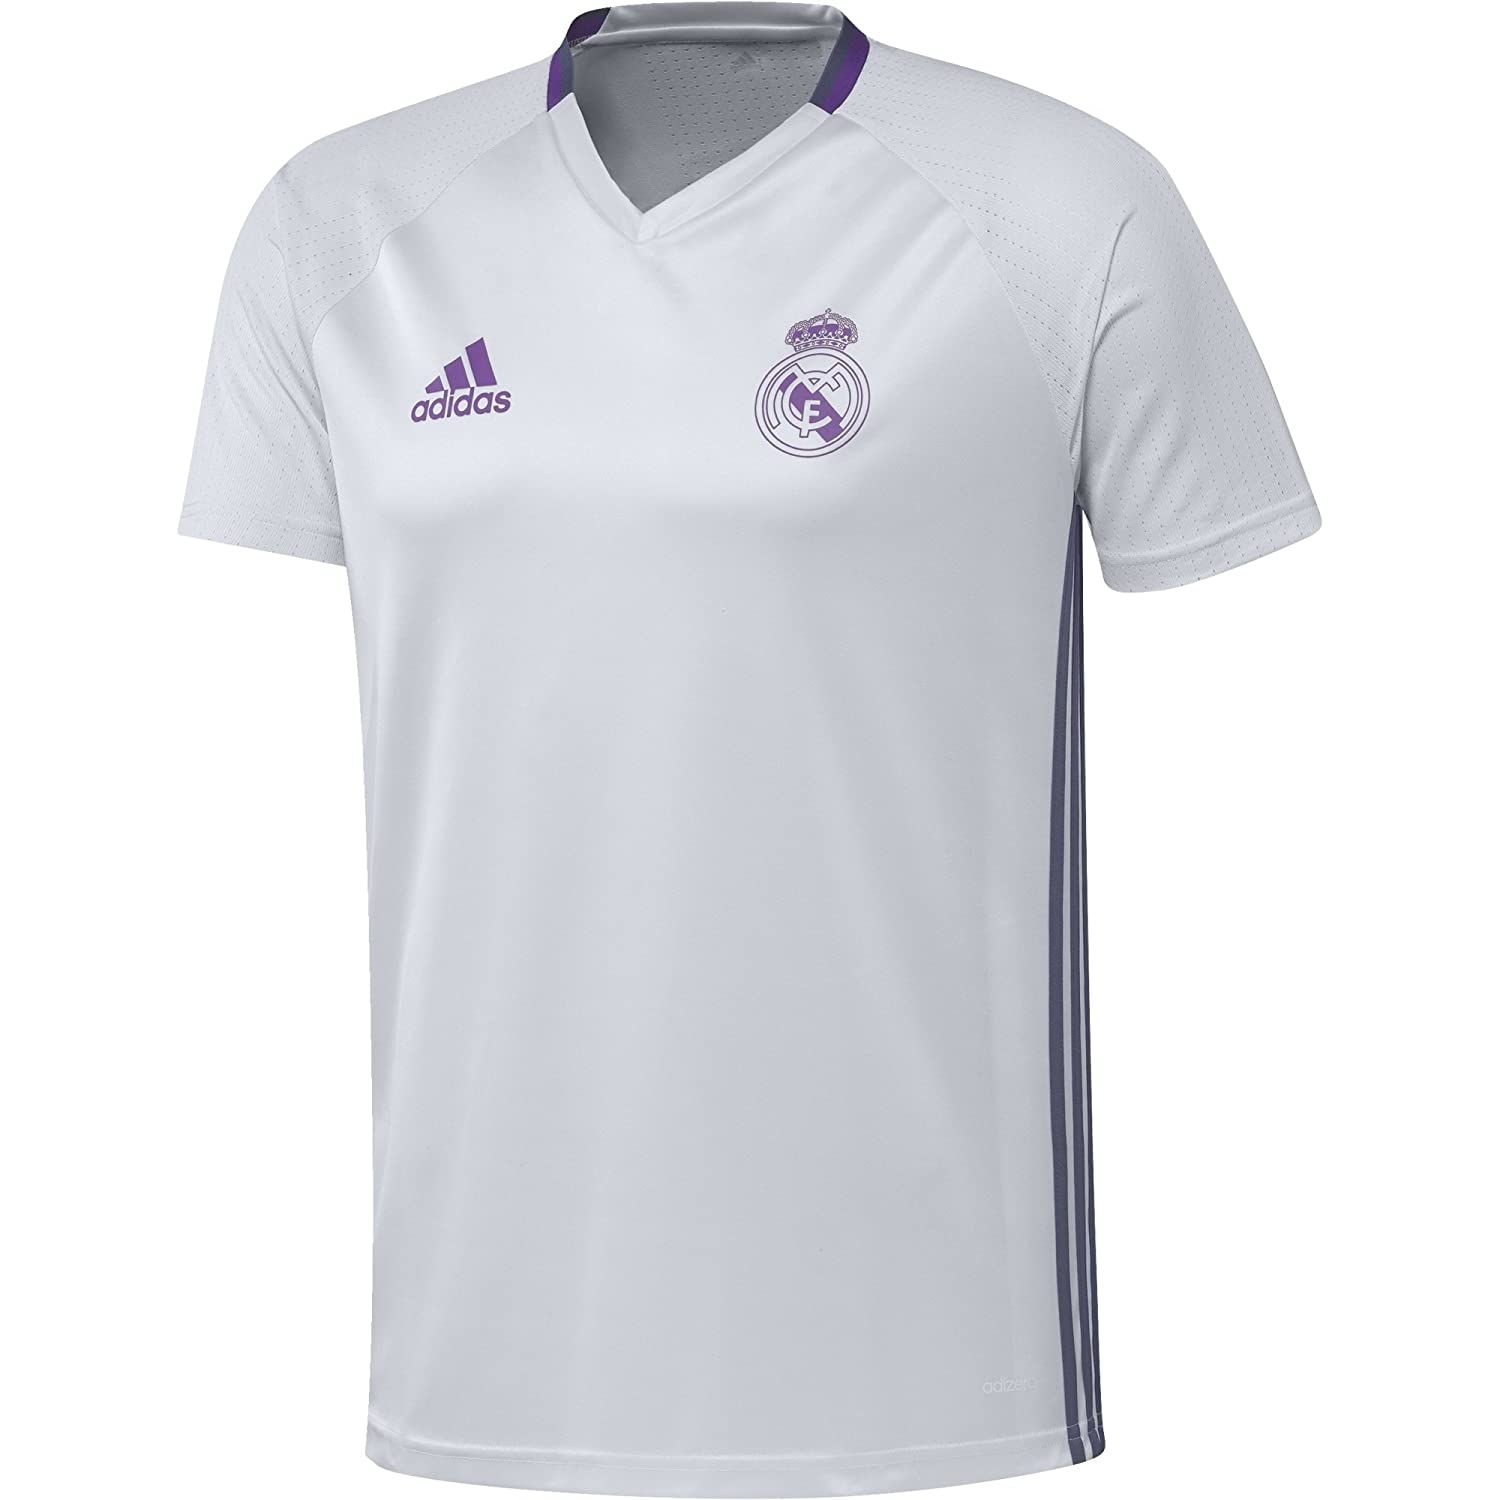 Homme Jsy Real T Shirt Madrid Adidas Trg Cf nkNO0wP8ZX